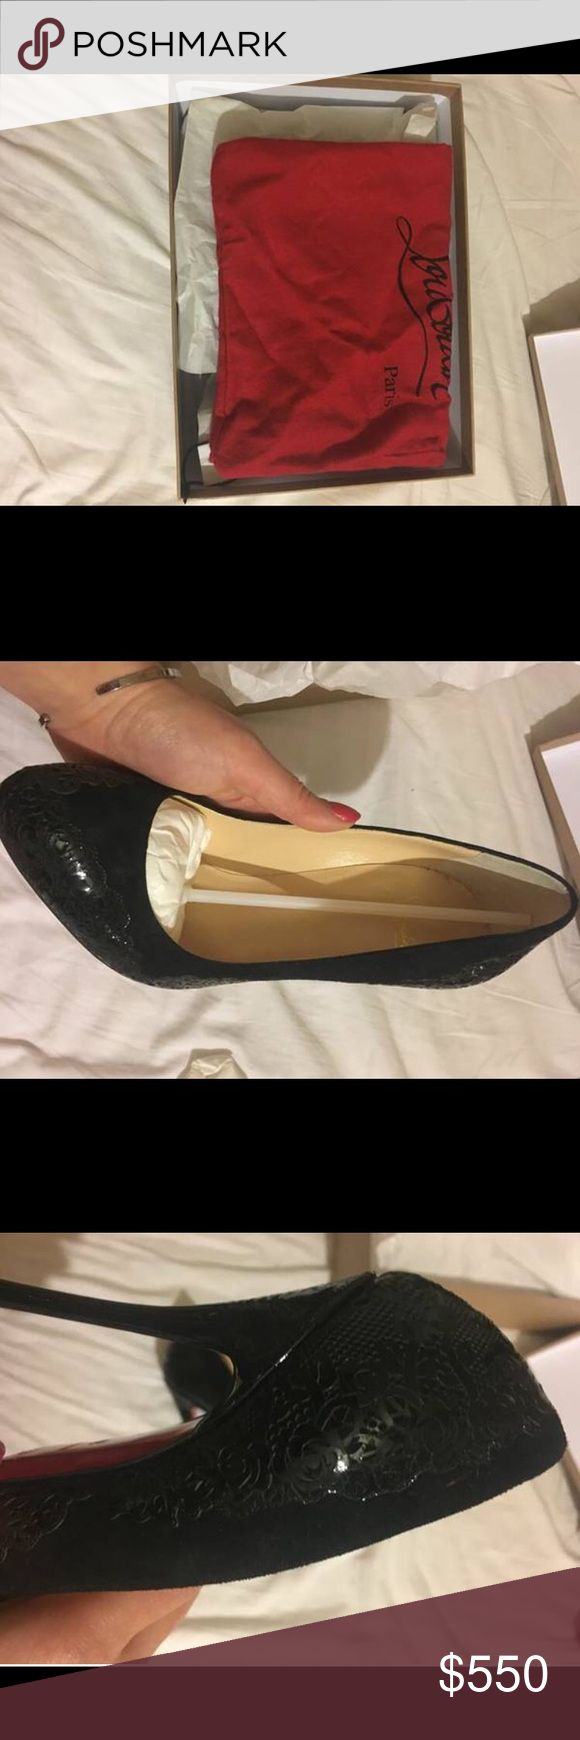 Christian Louboutins Size 7.5 Stunning black Louboutins that are too small for me :/ never worn, brand new in box, paid over $750 for them. Beautiful rose flowers etched in sides! Rare and SOLD OUT EVERYWHERE. Stickers still attached to soles. Comes with duster bag to keep heels looking amazing :) might be willing to trade for 7.5 yeezys or similar sneakers Christian Louboutin Shoes Heels